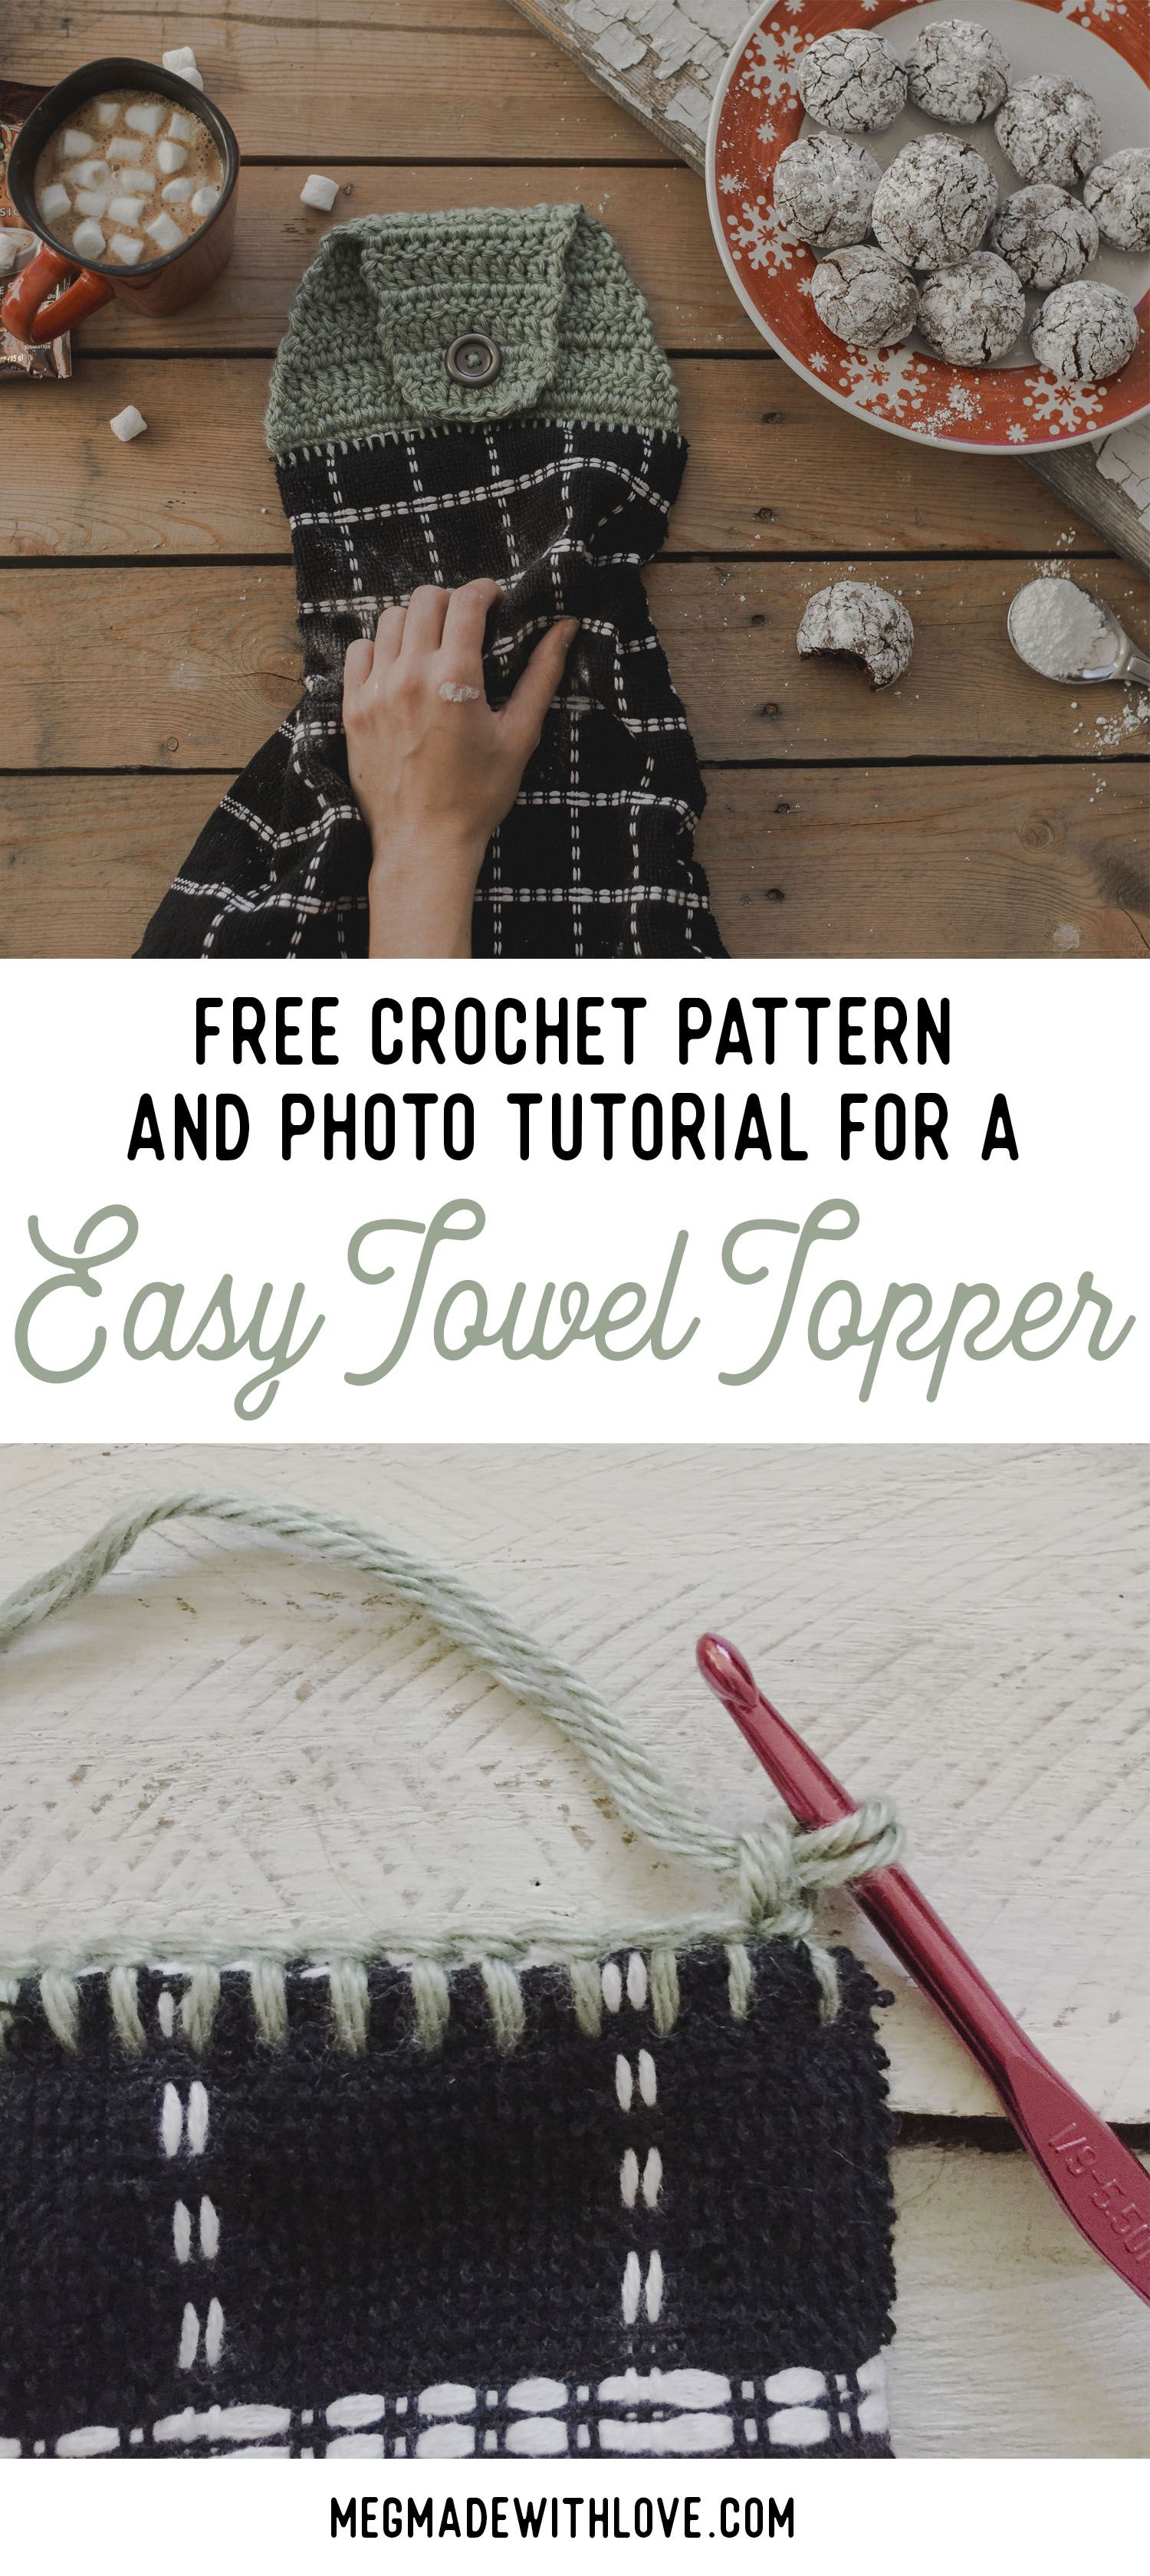 New Free Crochet Pattern for an Easy Towel Topper